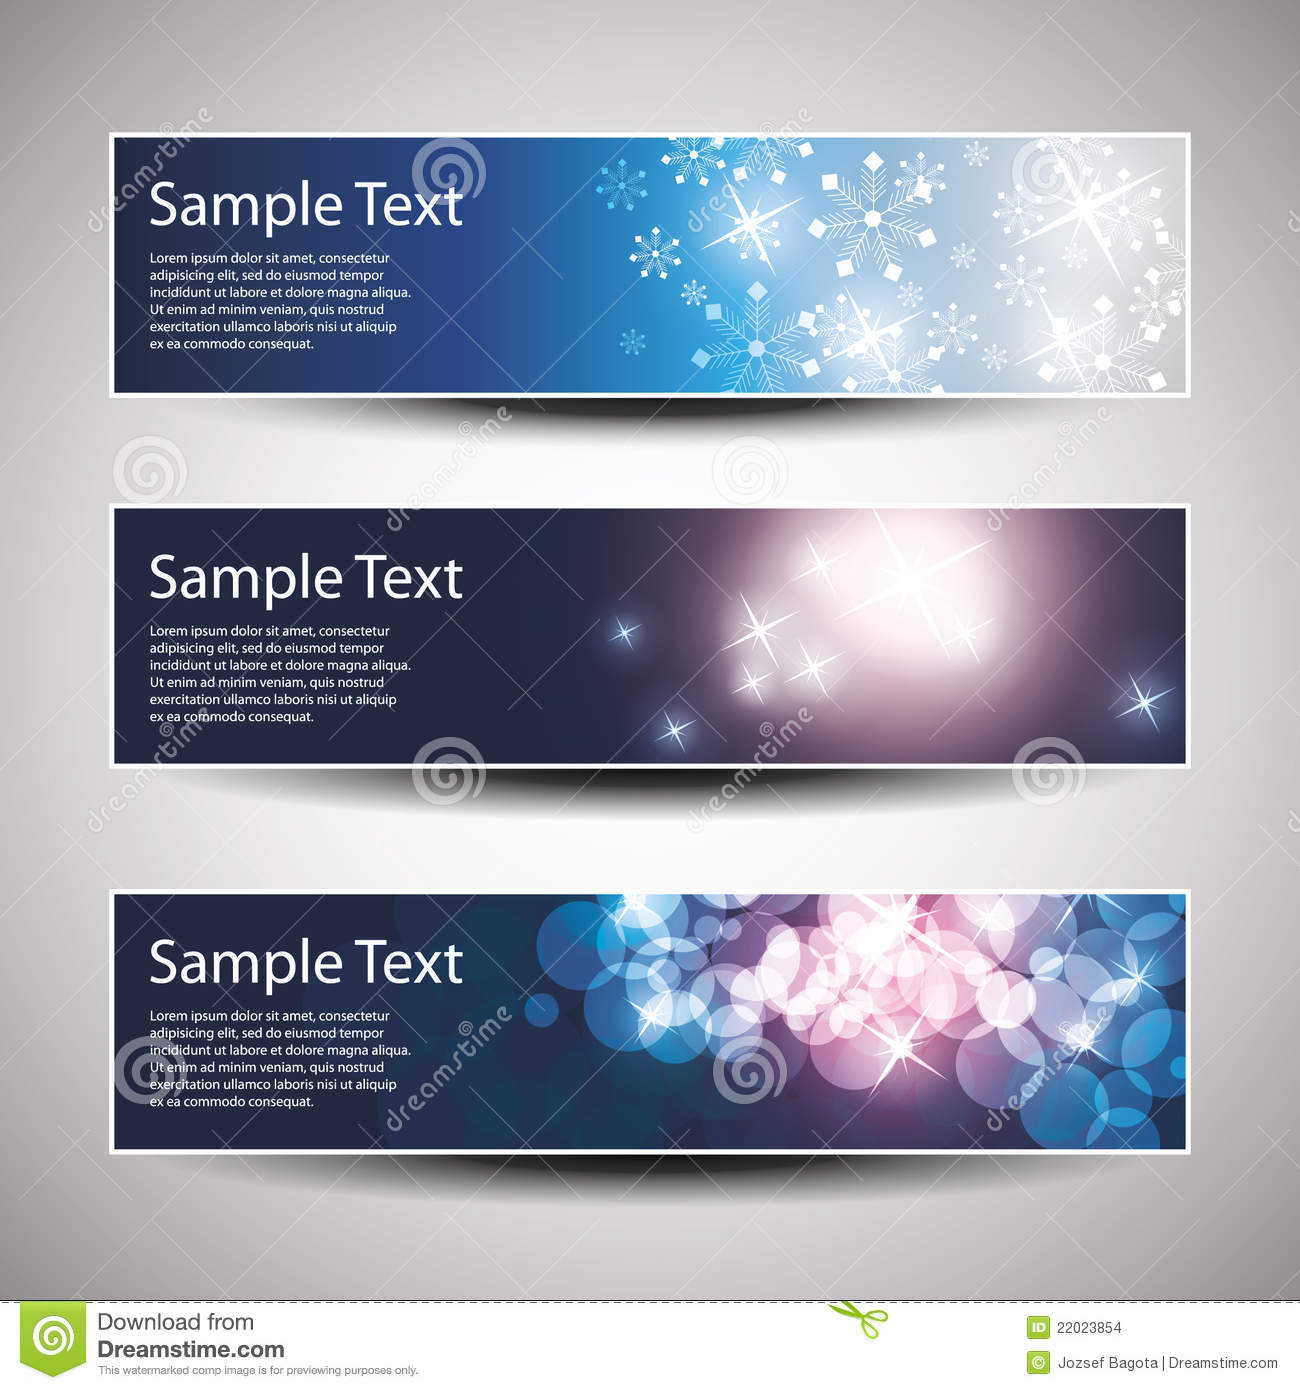 more similar stock images of vector set of three banner designs